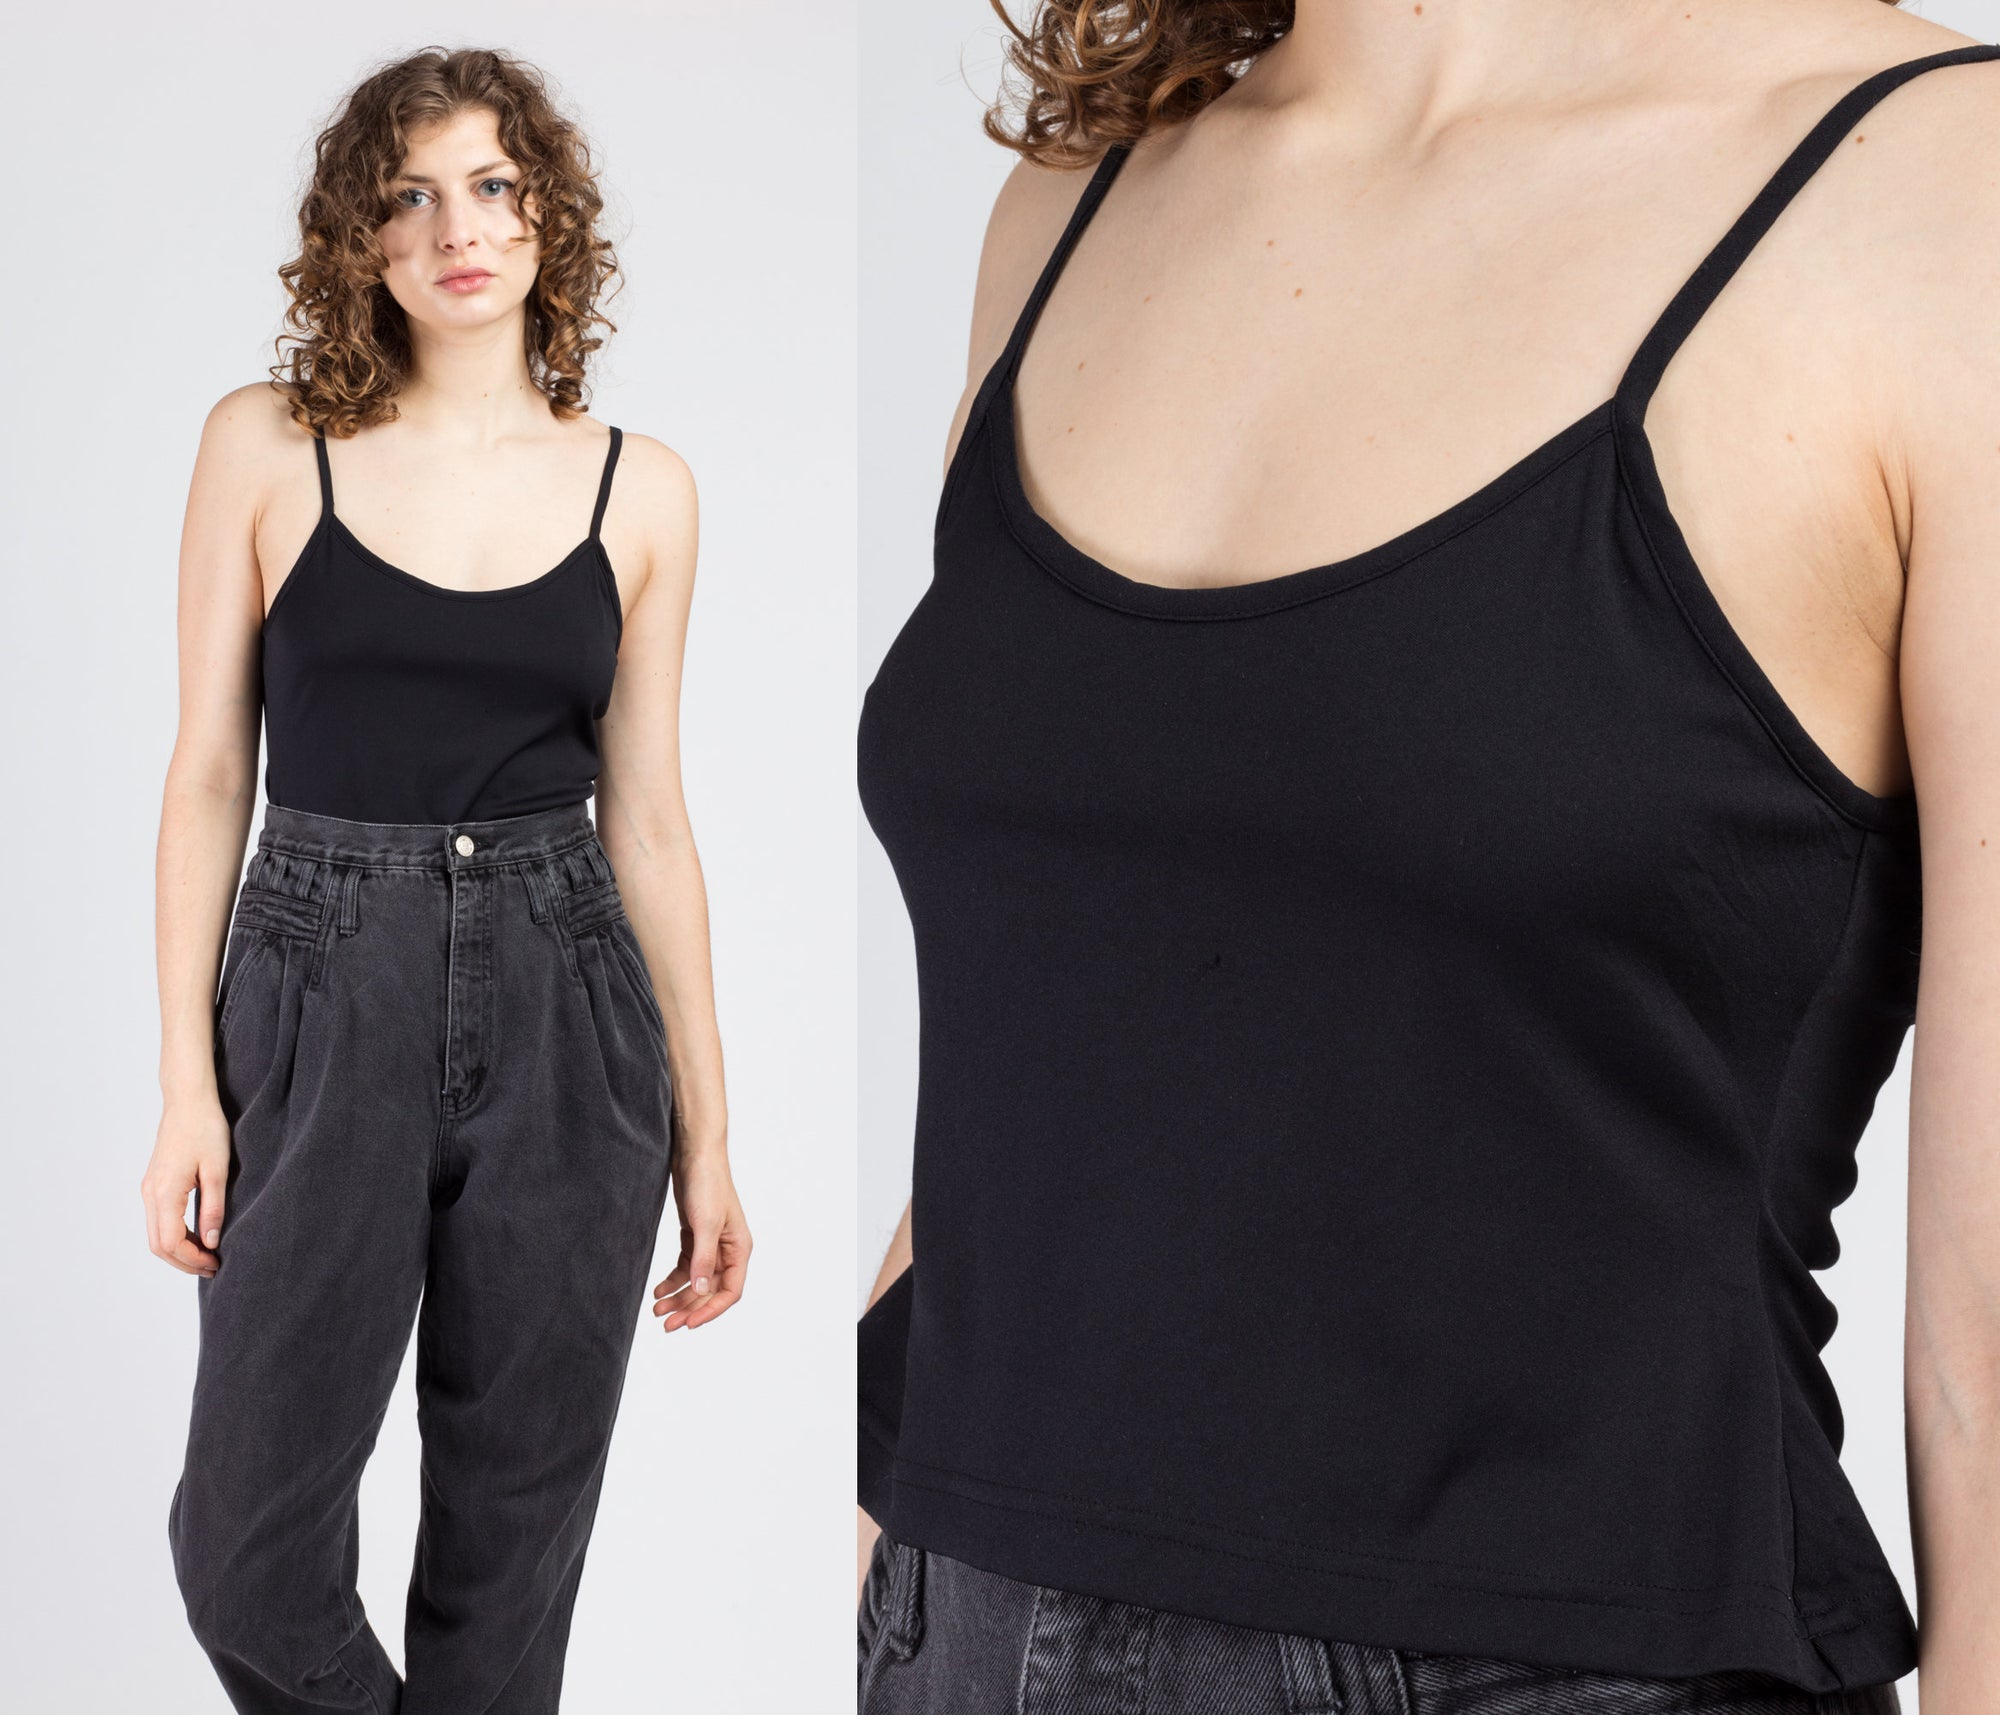 Vintage Black Crop Top - Medium to Large